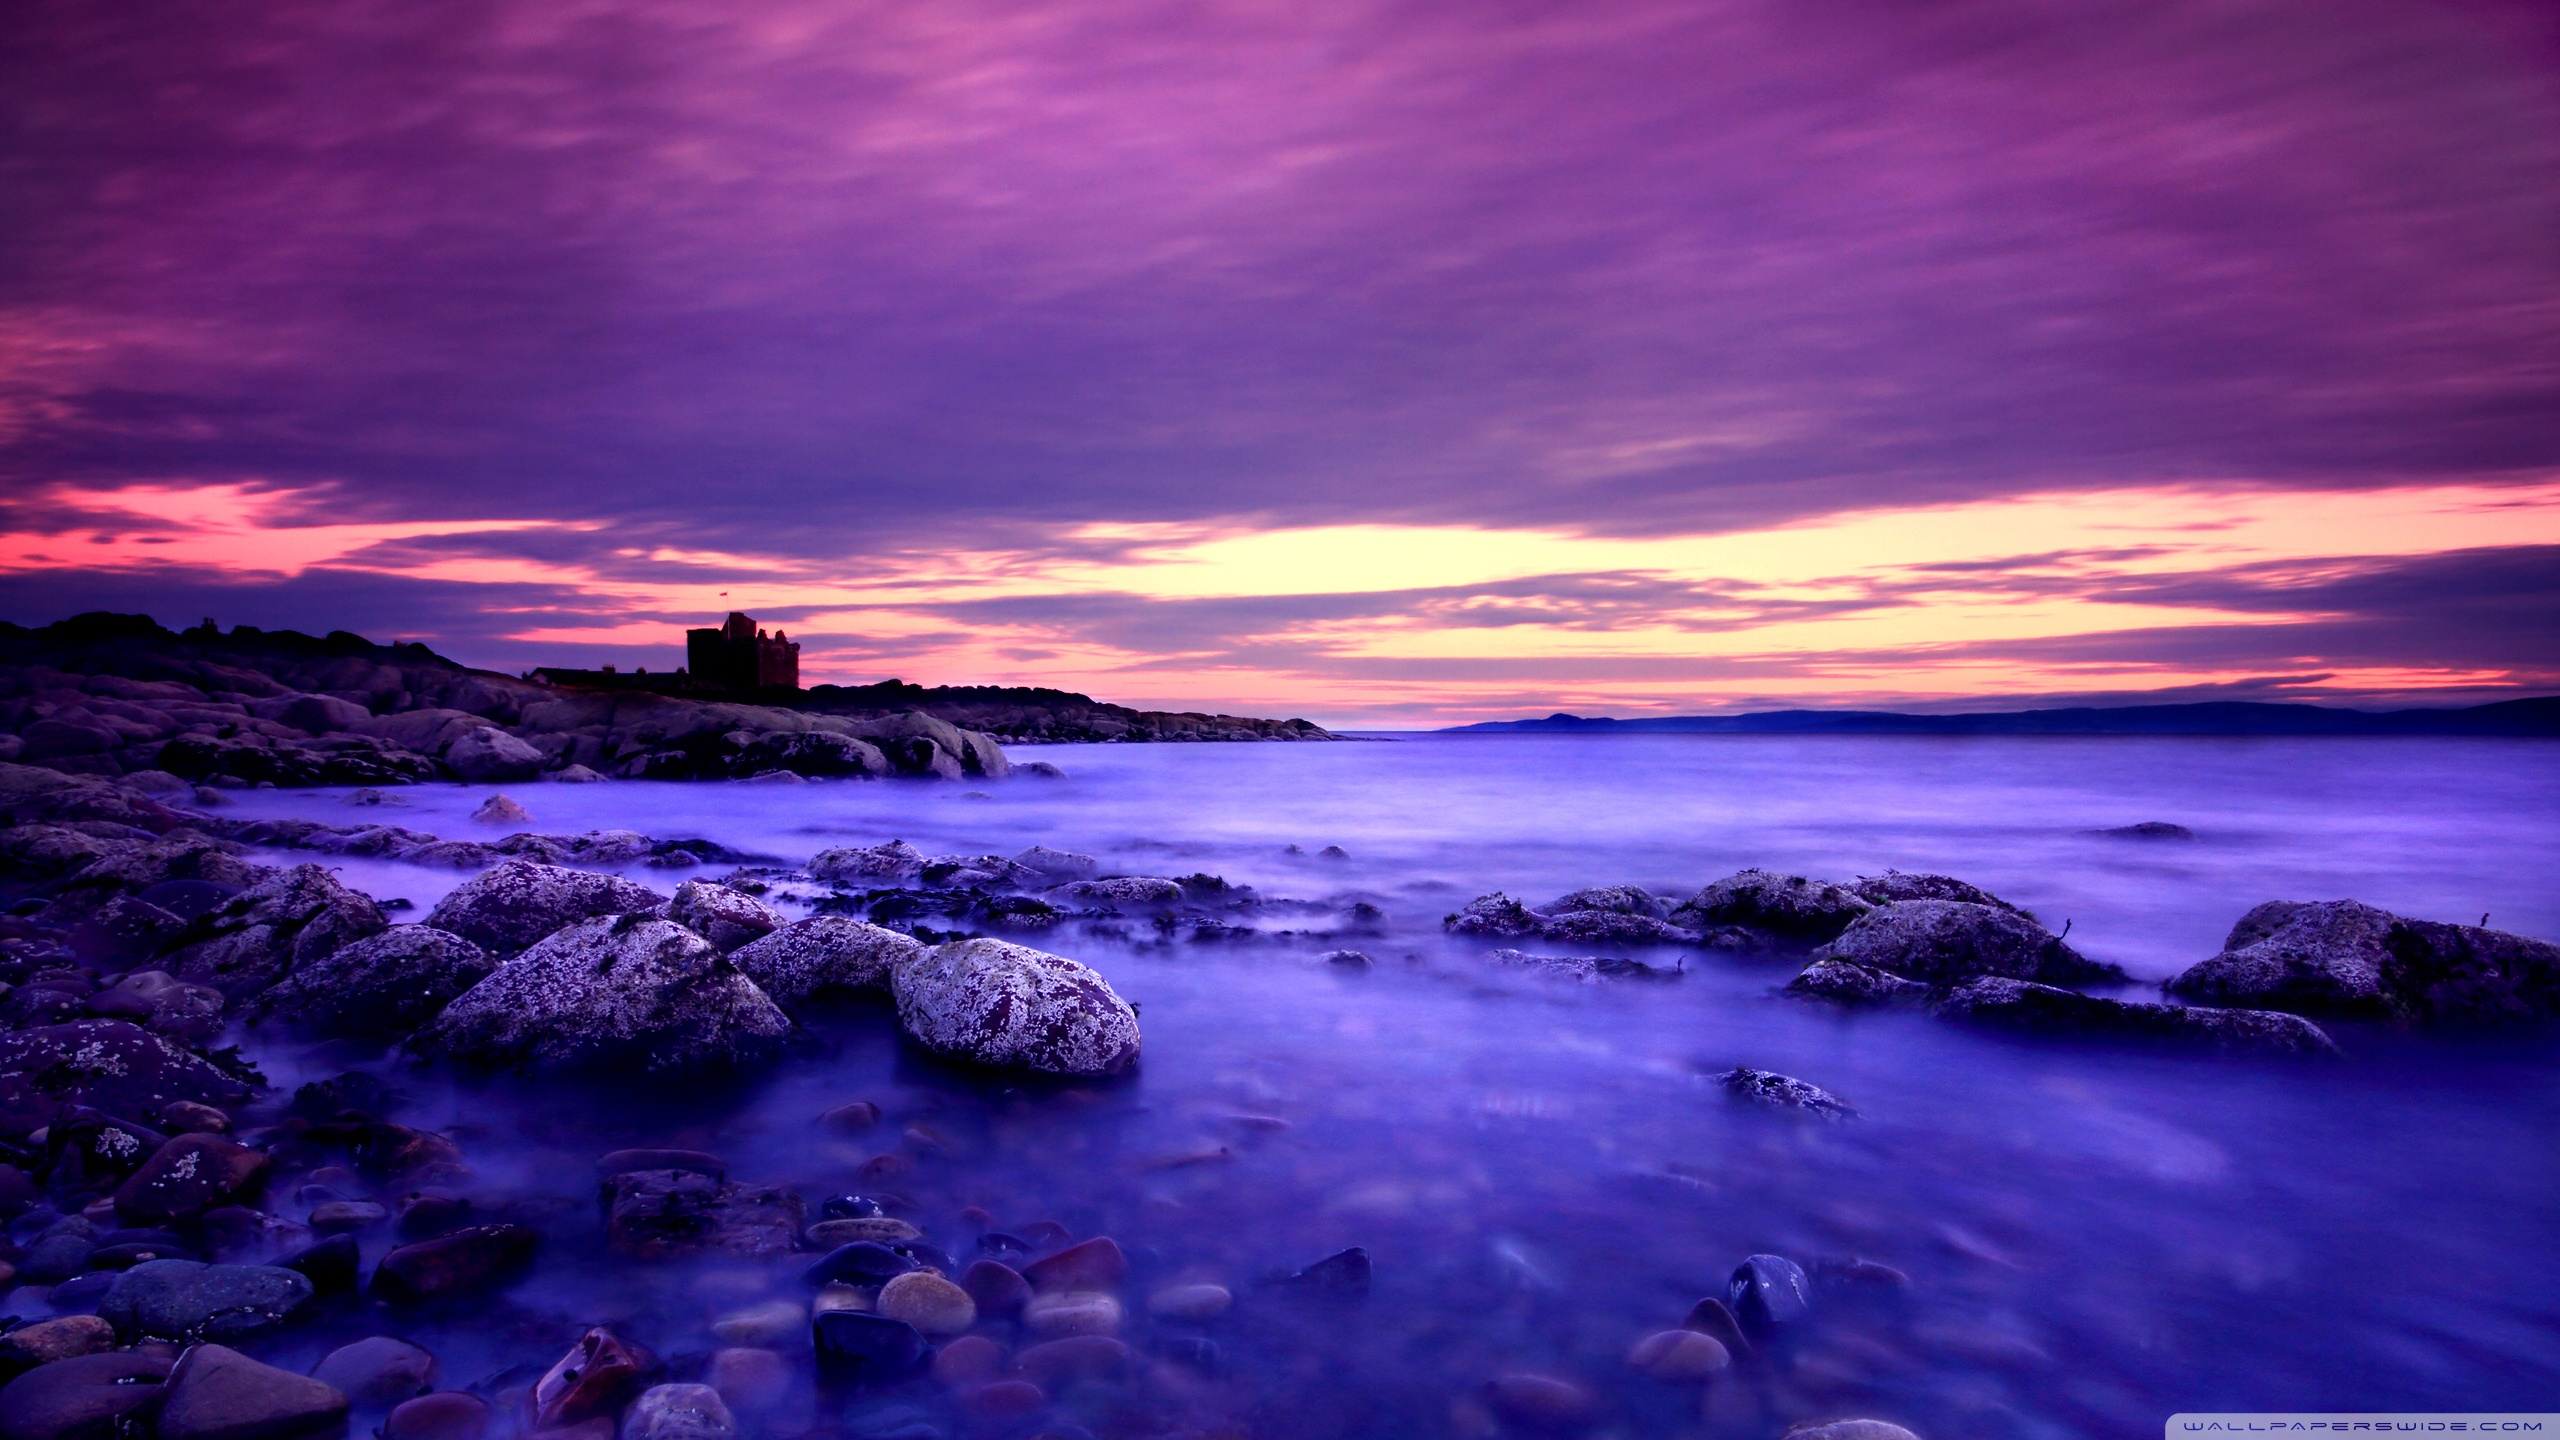 Hd Wallpapers For Laptop 15 6 Inch Screen Violet Clouds And Blue Water 4k Hd Desktop Wallpaper For